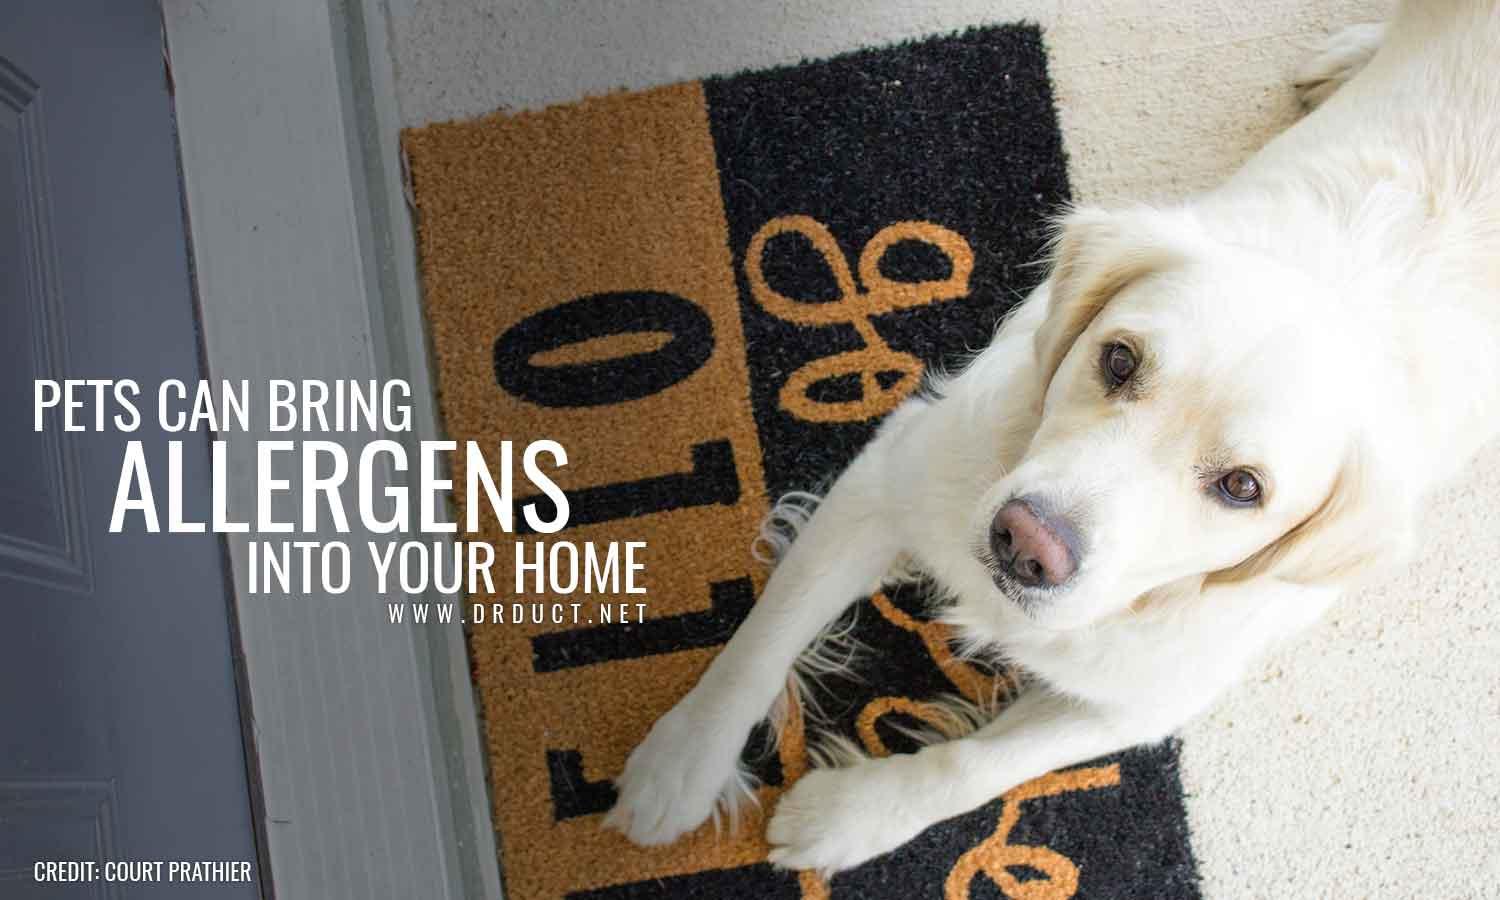 Pets can bring allergens into your home